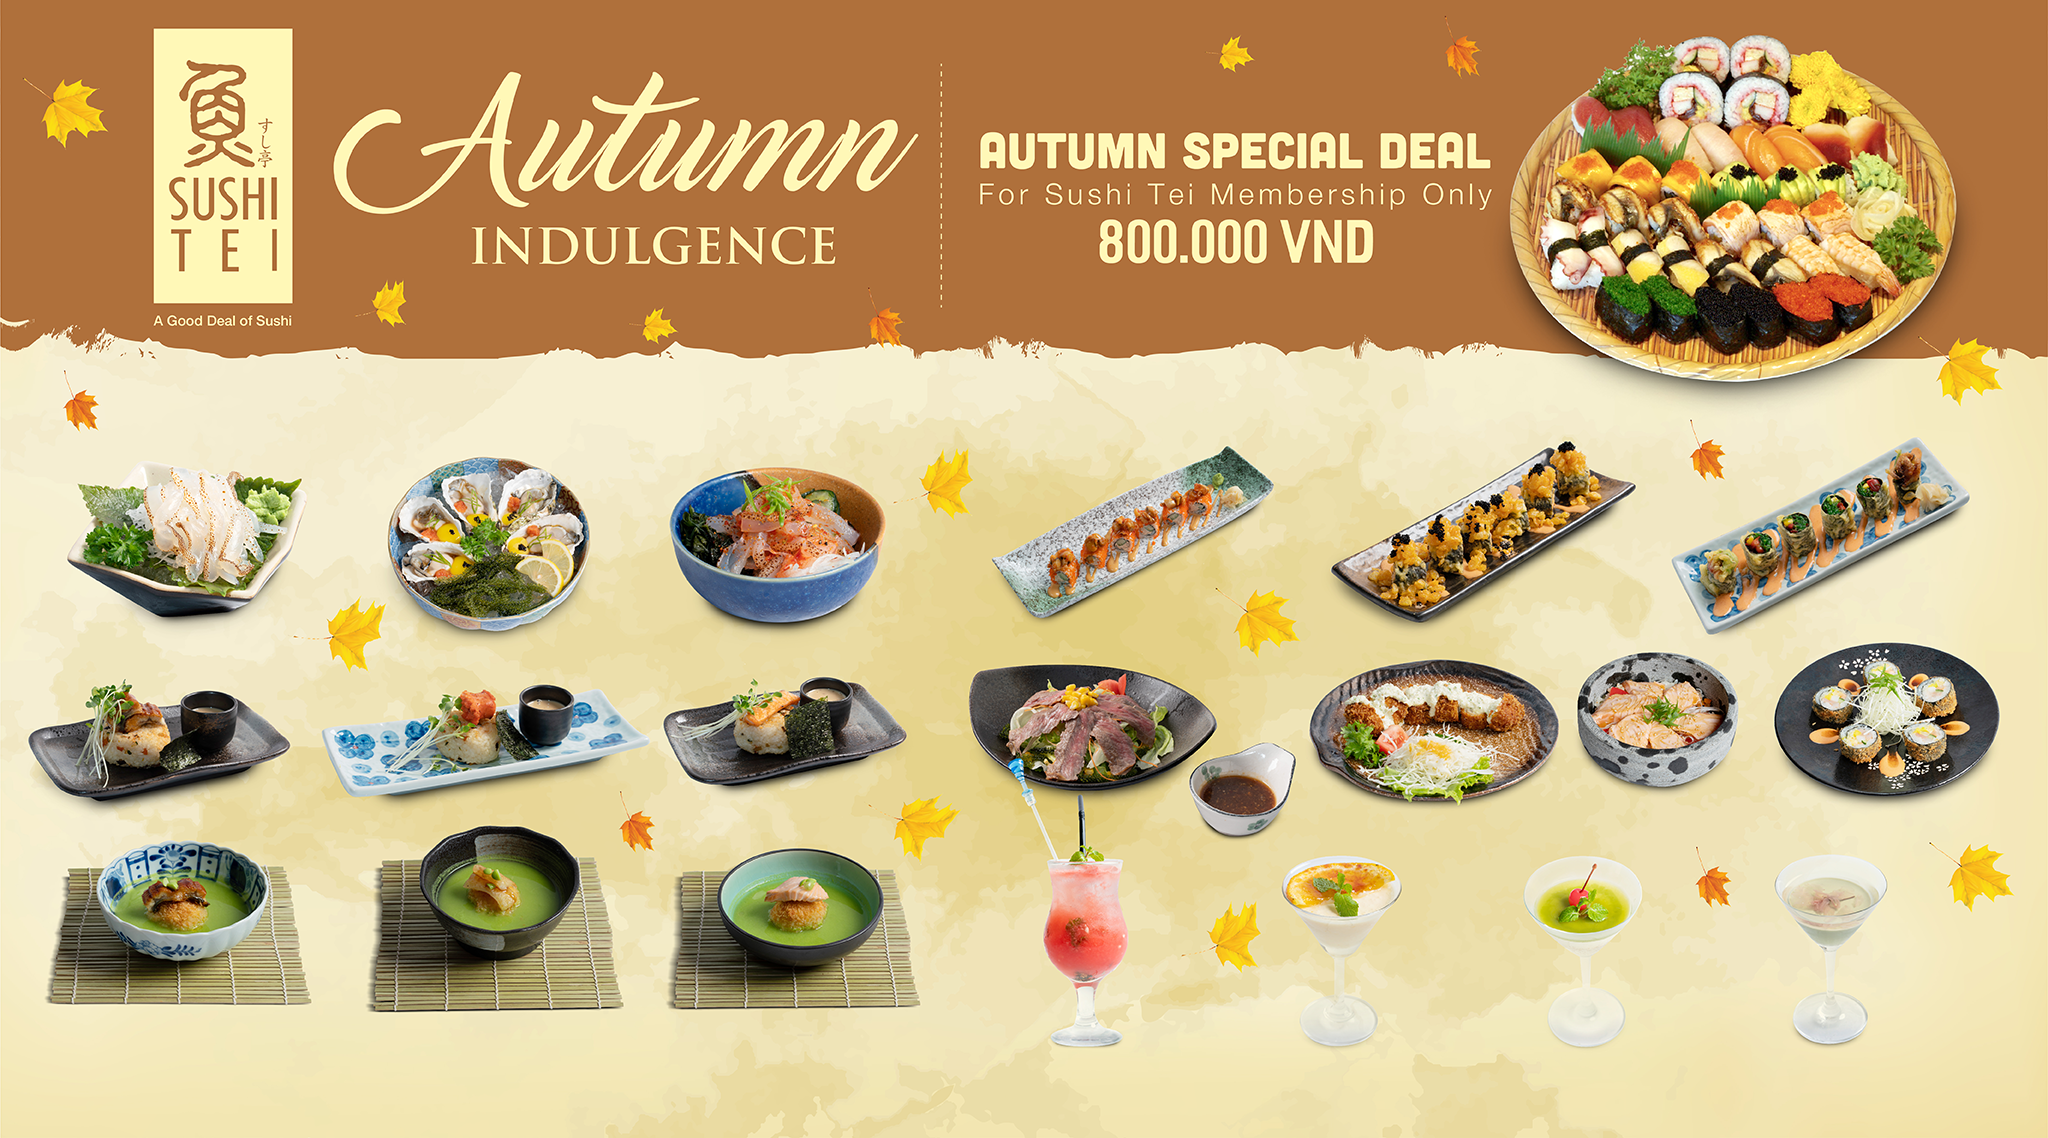 REFRESH YOUR TASTE WITH SUSHI TEI AUTUMN INDULGENCE MENU 2018